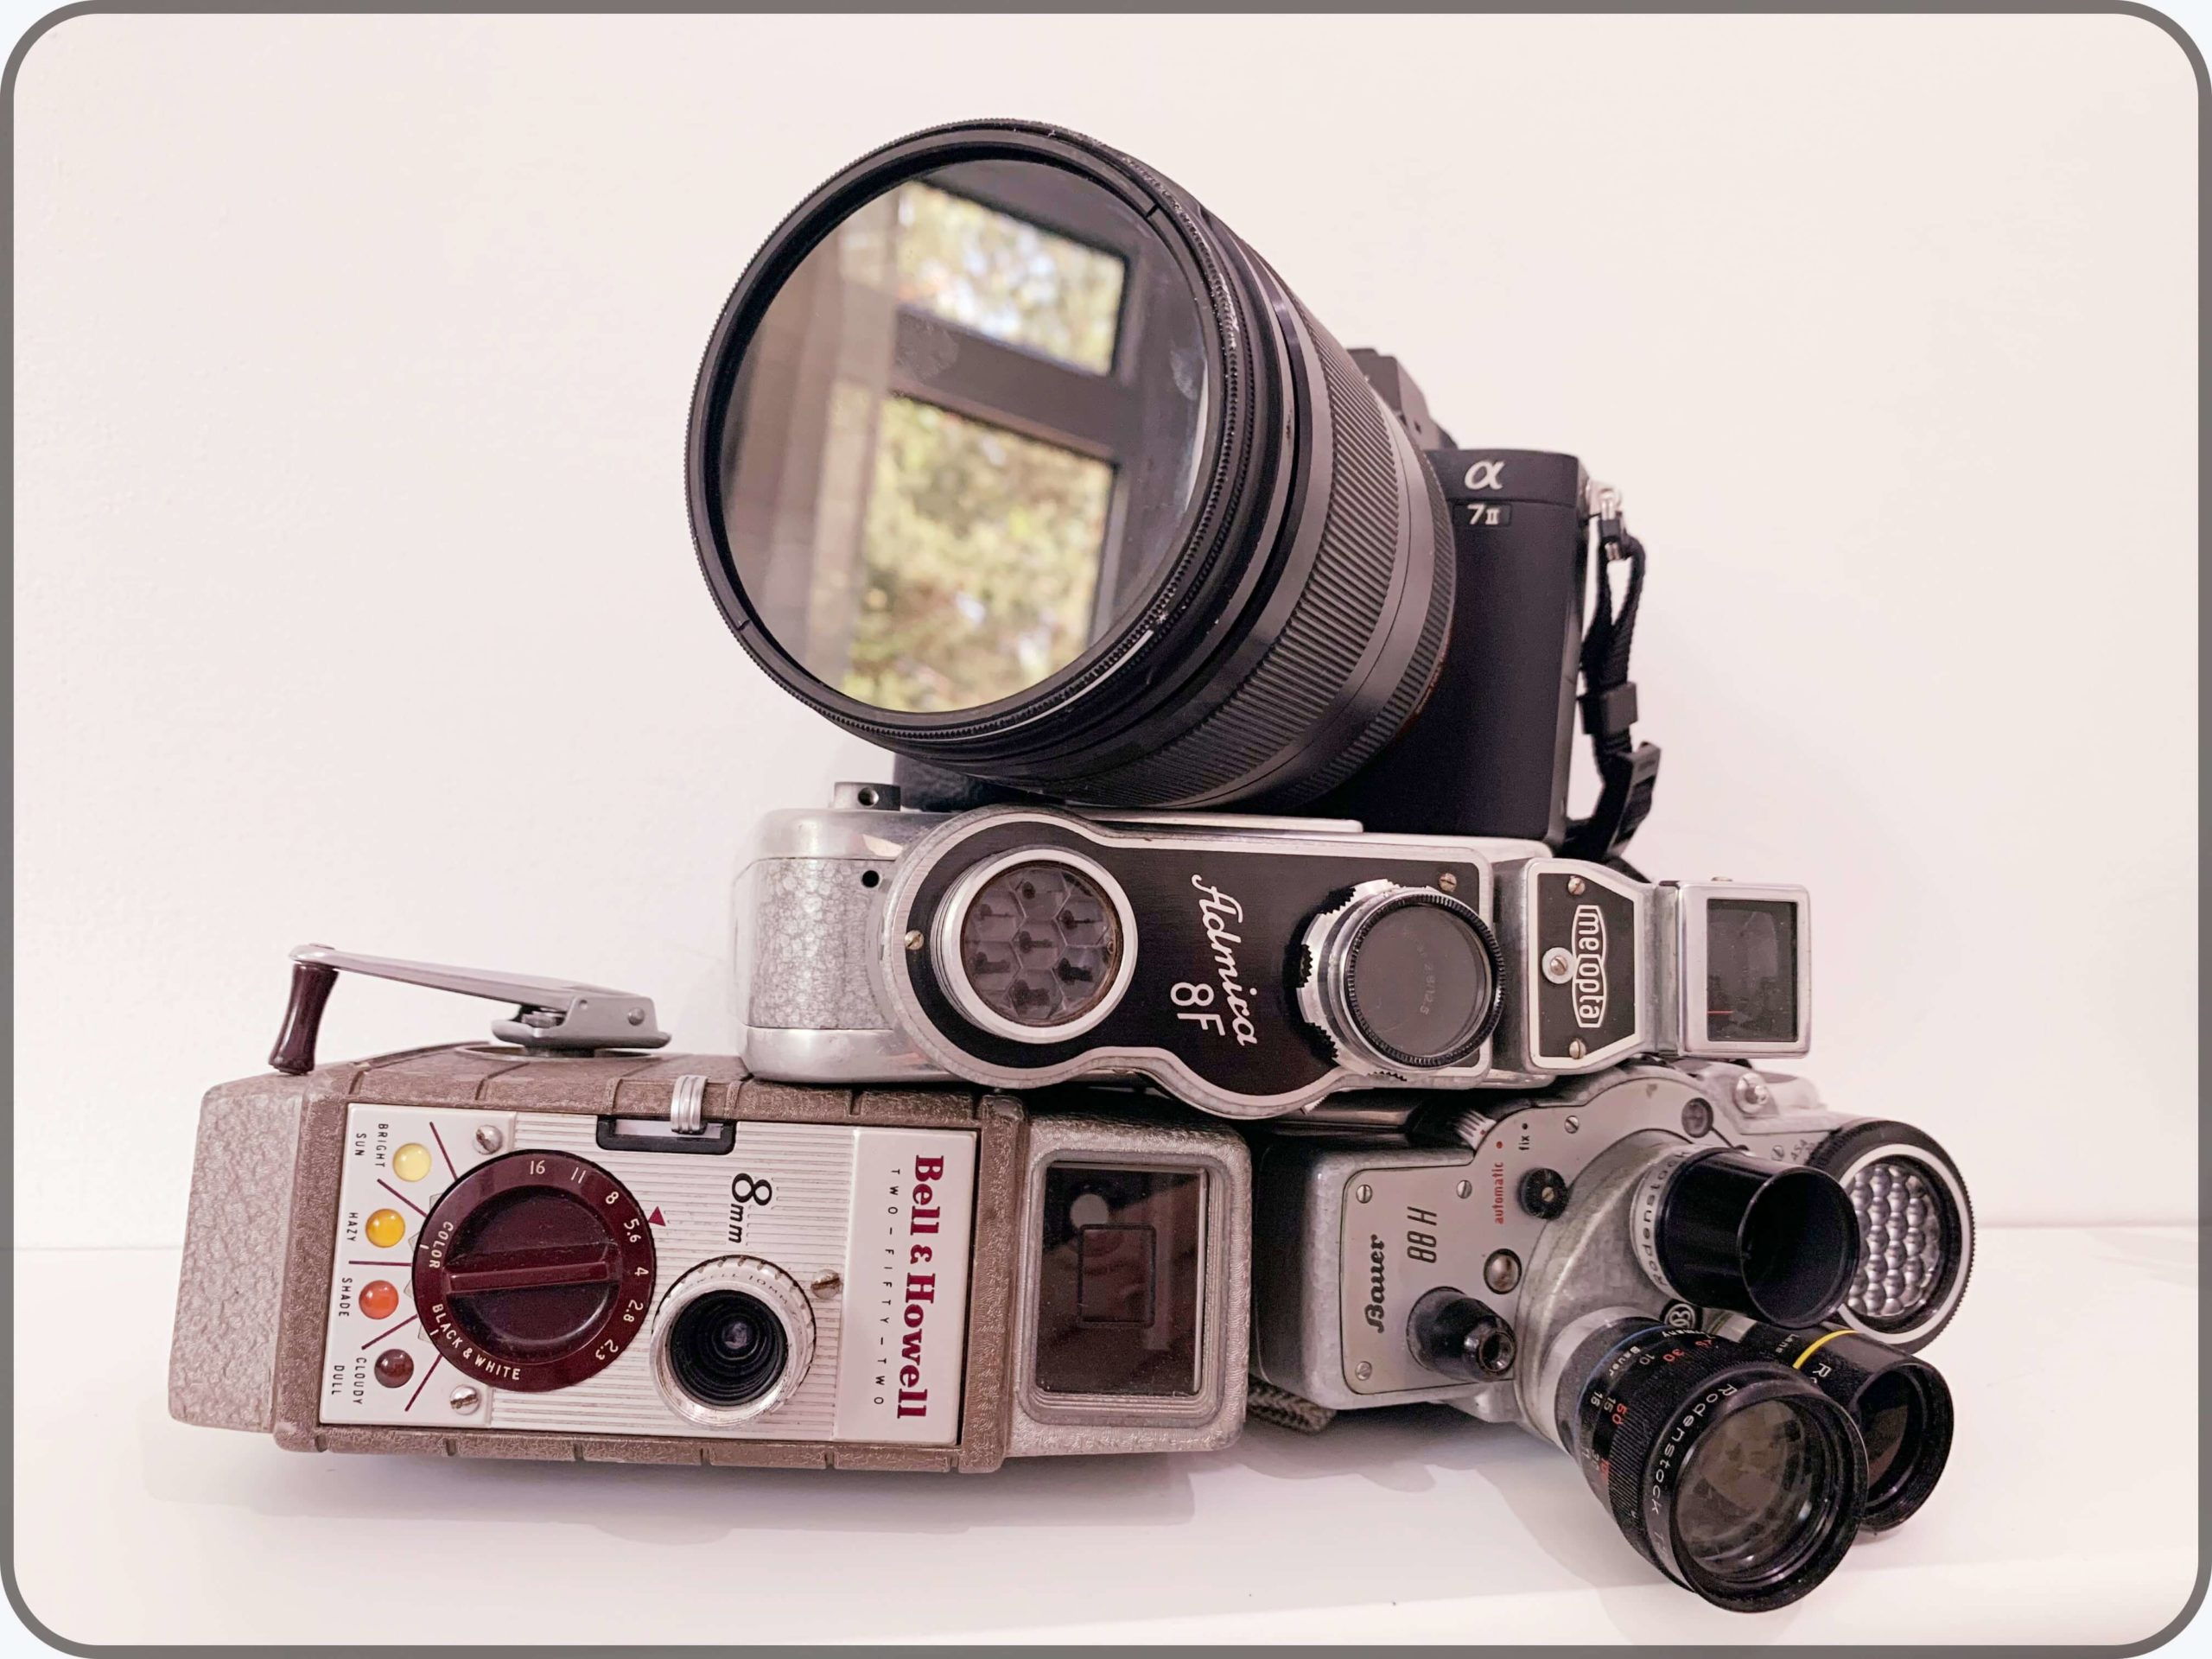 Galleries - The World Through the Lens